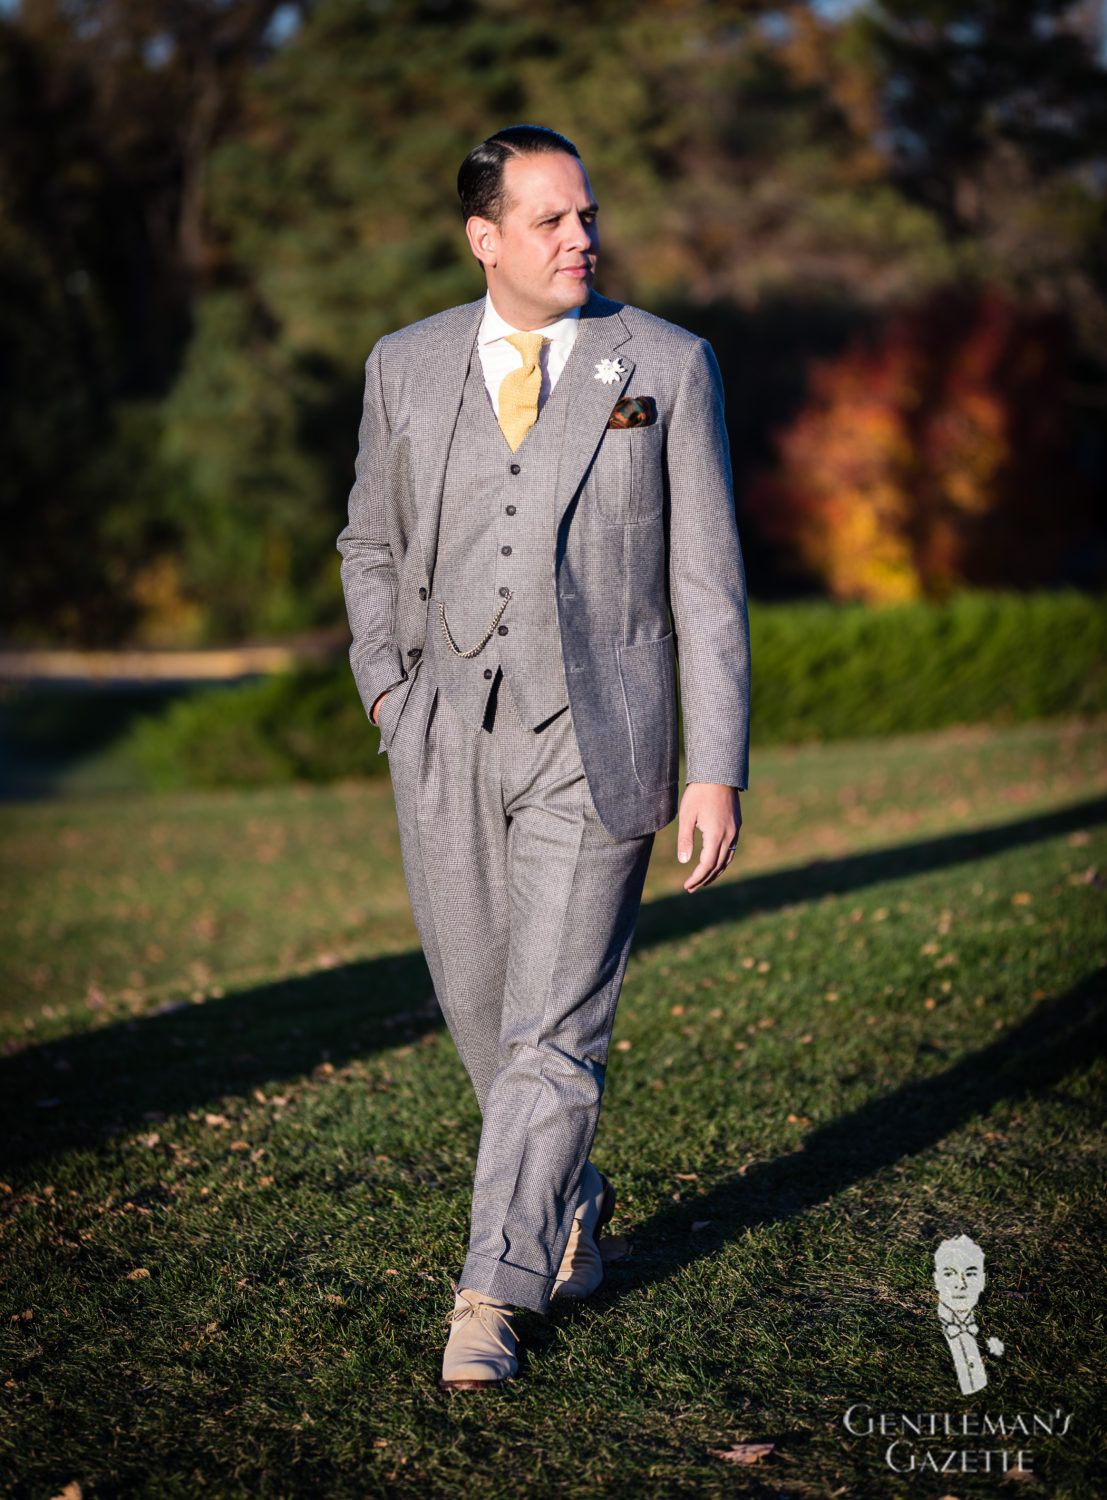 Pin by christopher holland on styles that suit me 2